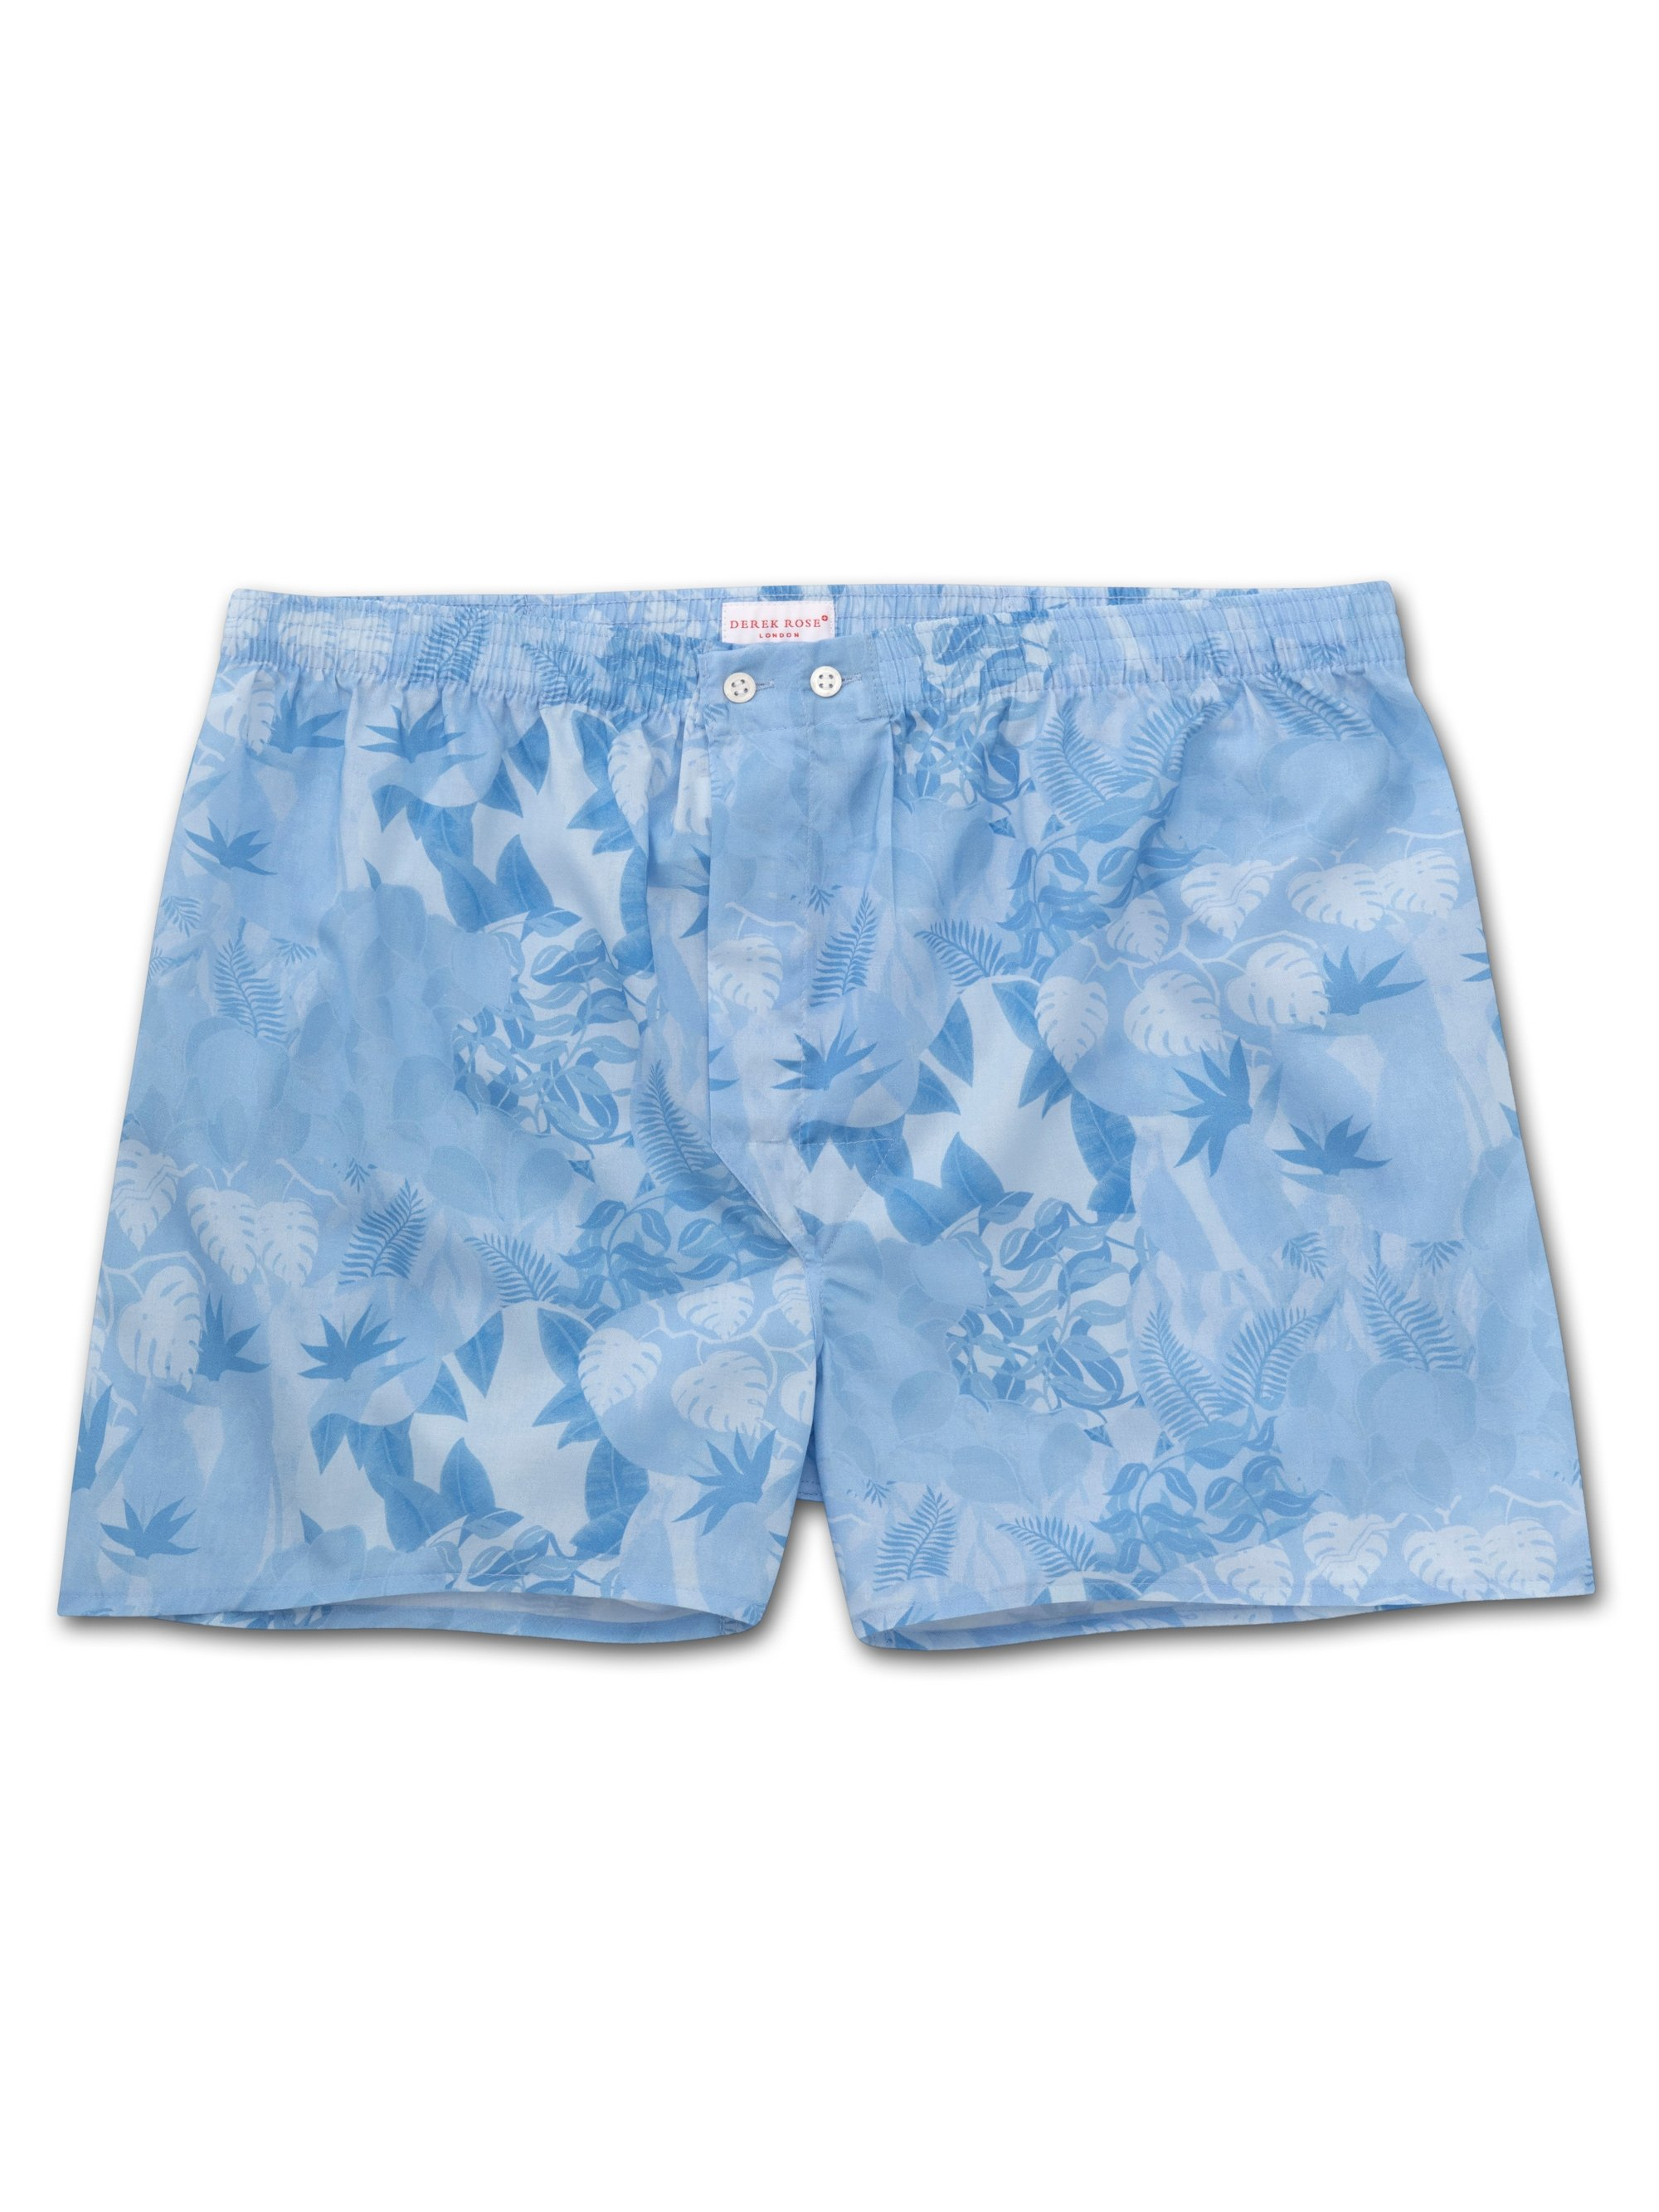 Men's Classic Fit Boxer Shorts Ledbury 35 Cotton Batiste Blue